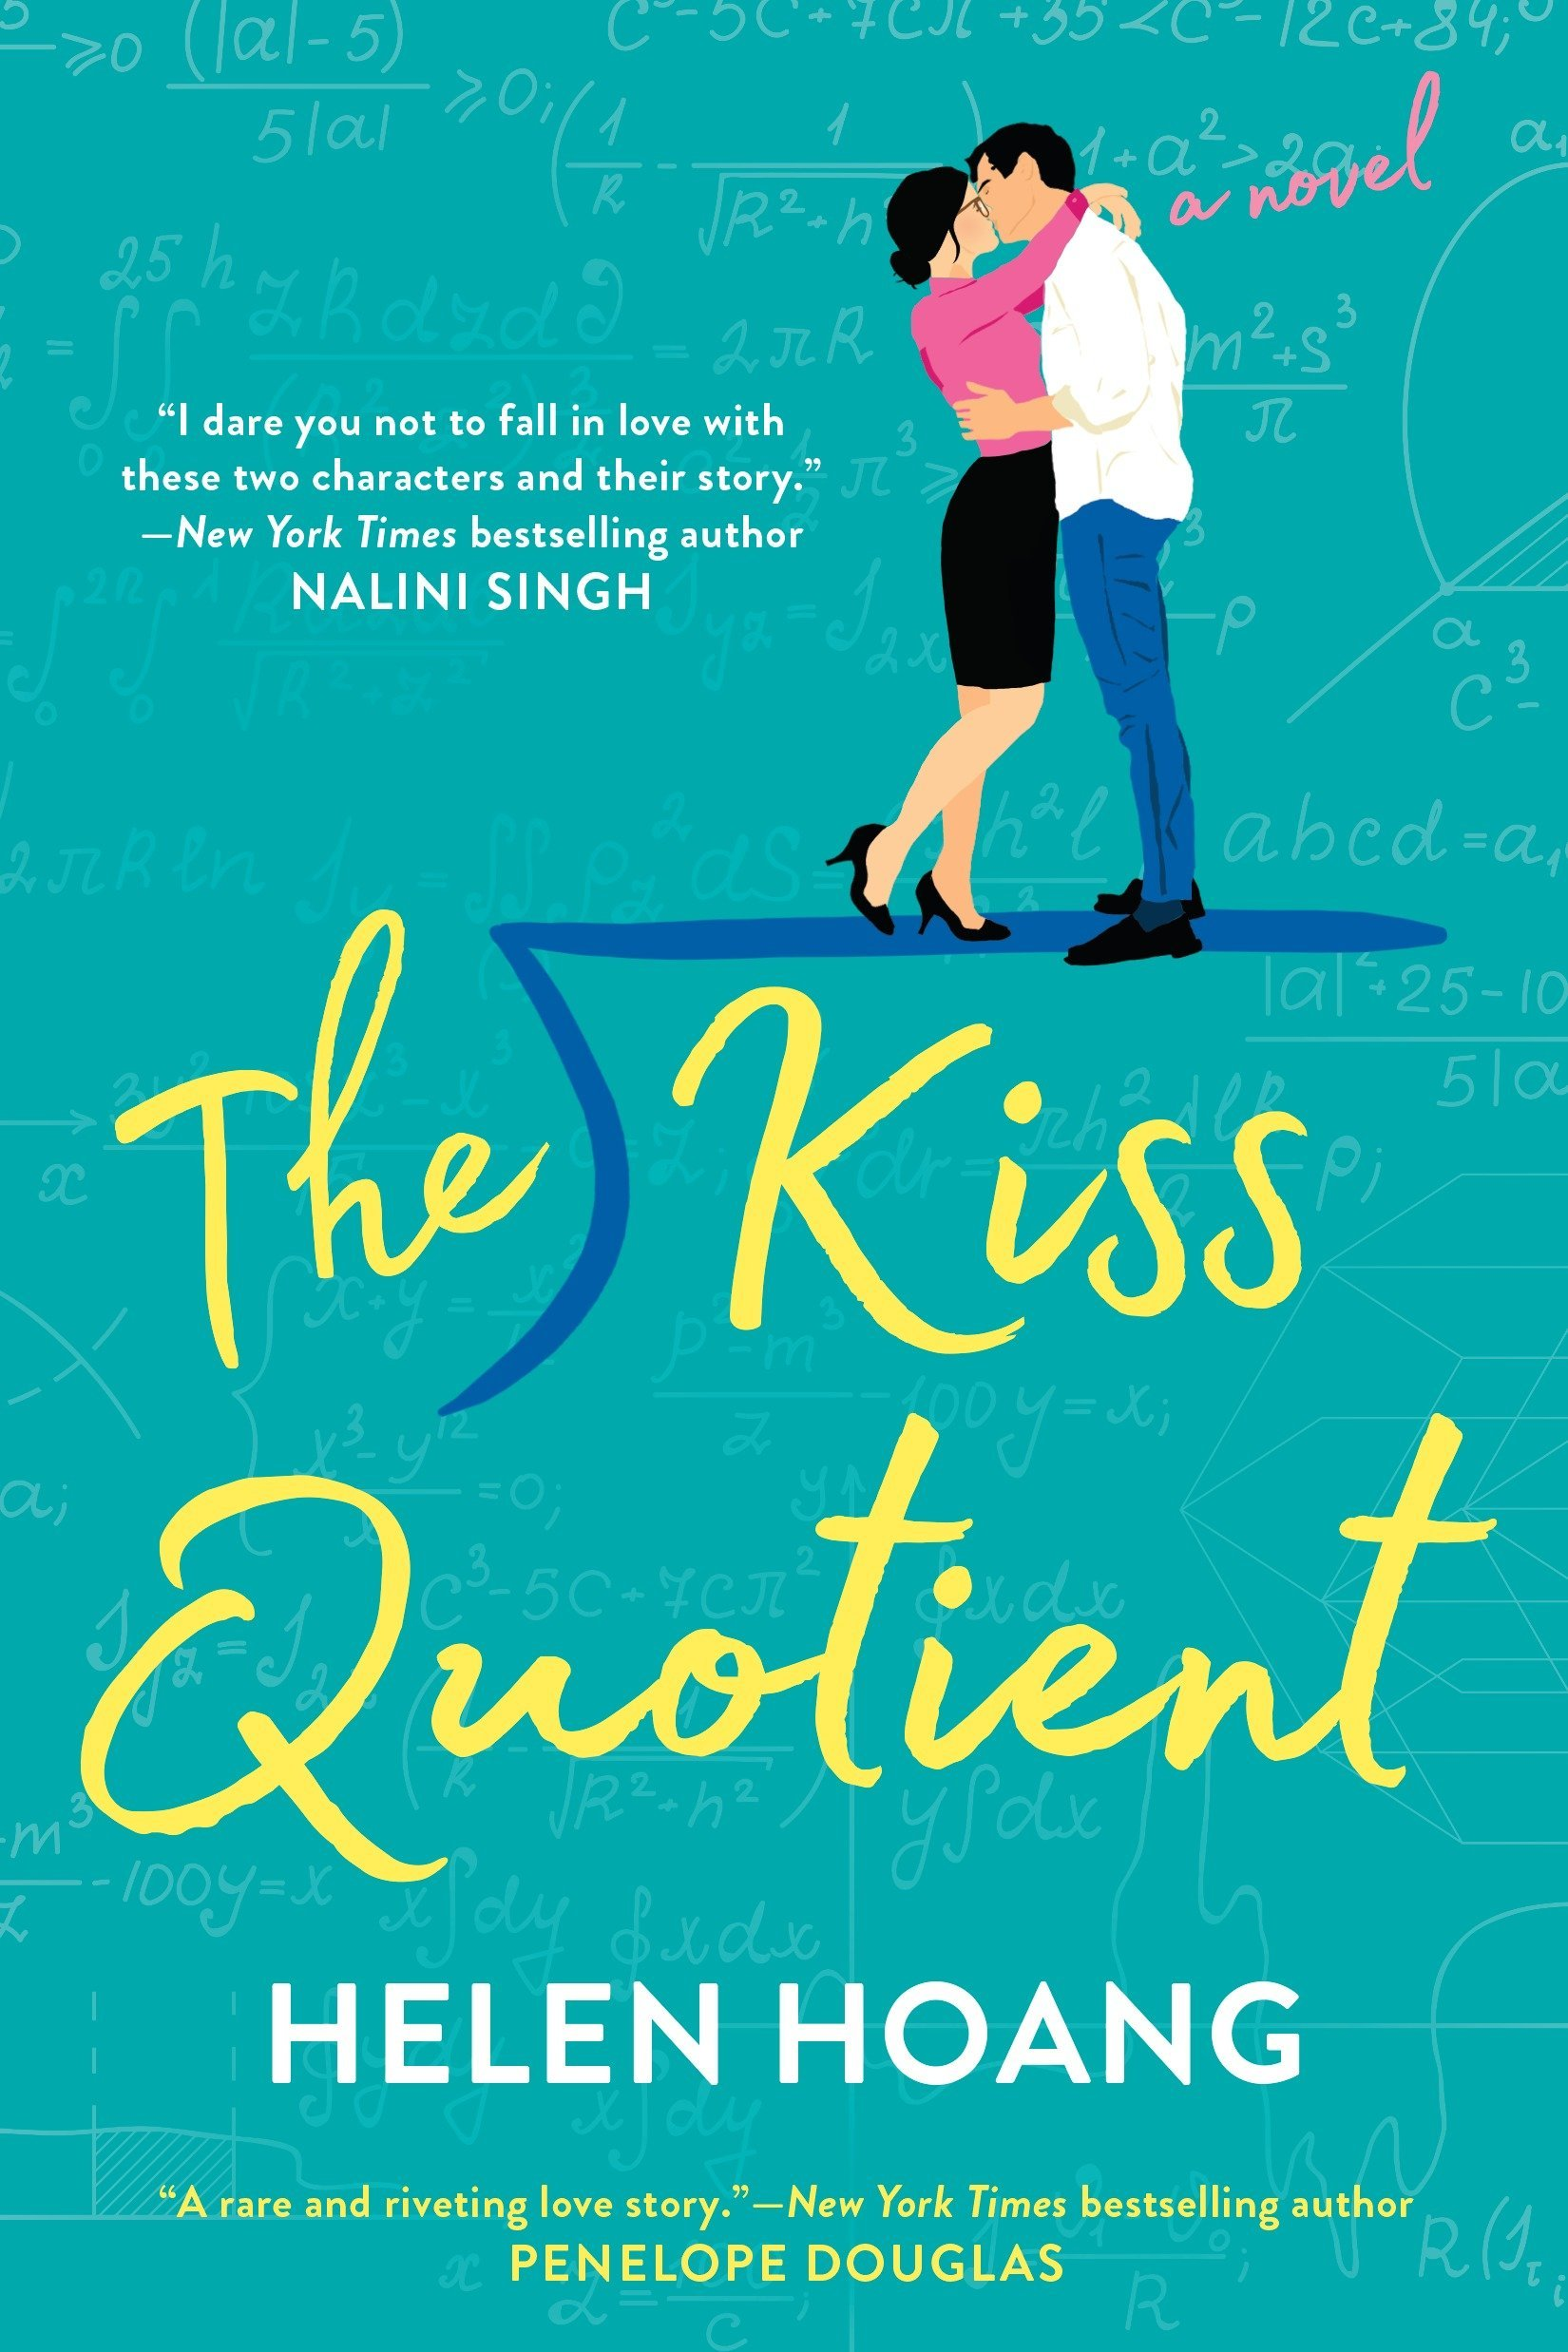 The cover of The Kiss Quotient. On the cover we see a couple kissing, standing atop the long division symbol.